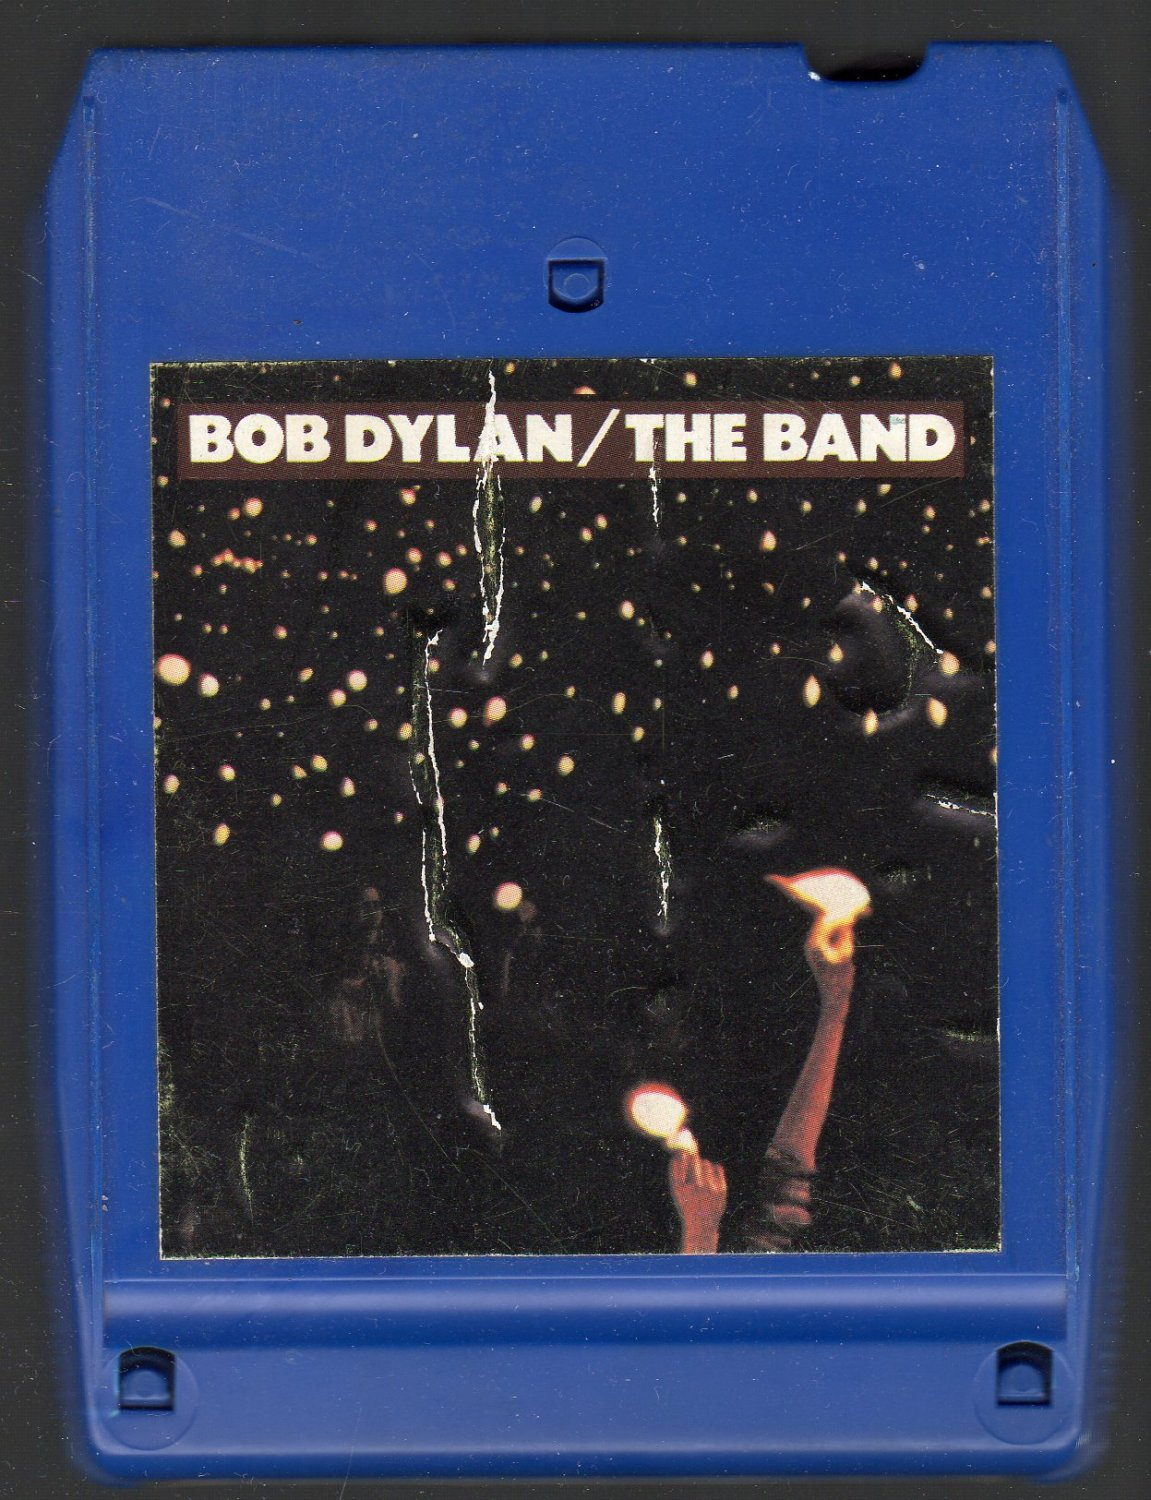 Bob Dylan / The Band - Before The Flood Part 2 8-track tape